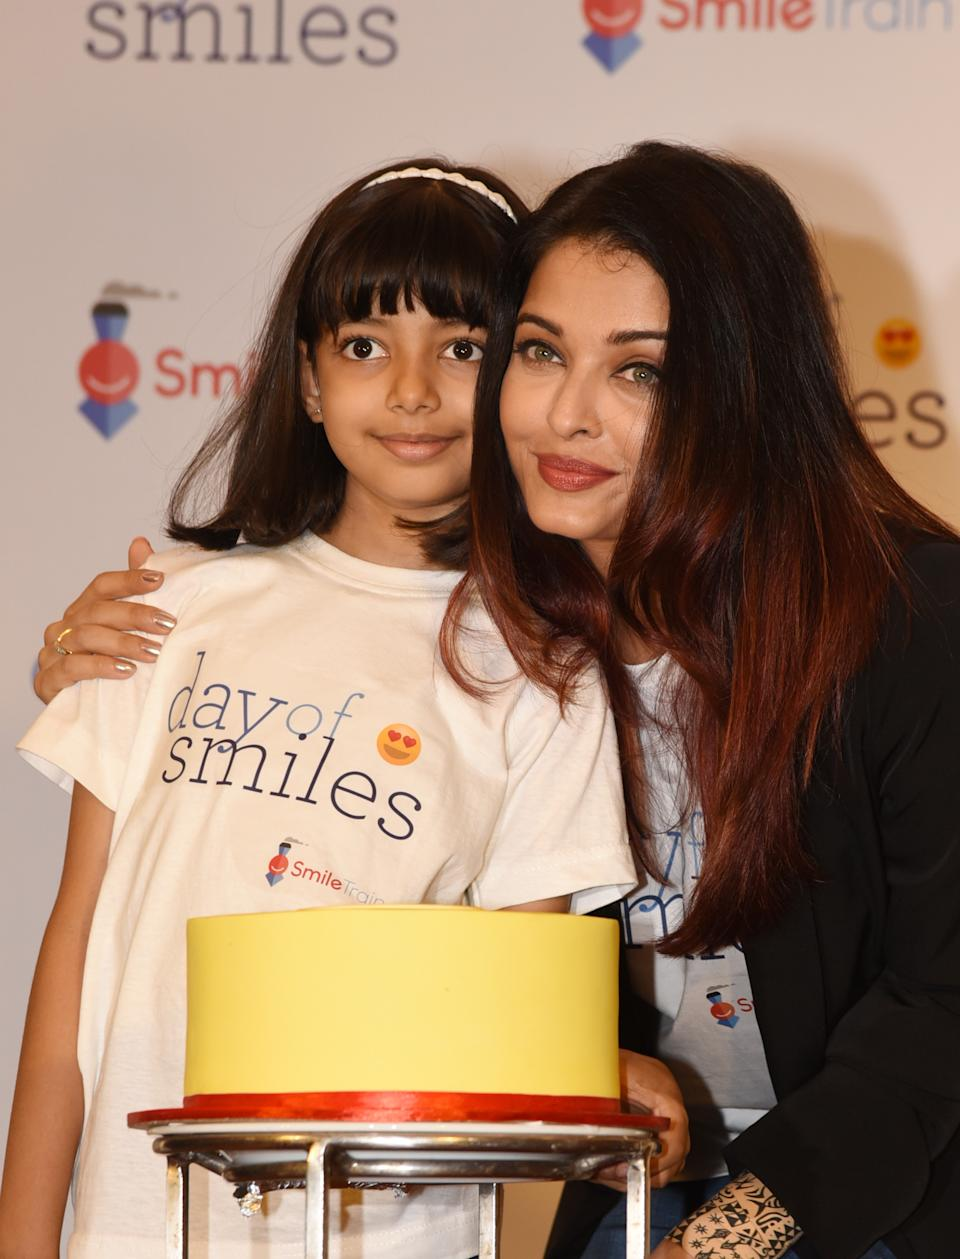 Indian Bollywood actress Aishwarya Rai Bachchan (R) poses with her daughter Aaradhya Bachchan during a birthday event with NGO Smile Train India in honour of her late father, Krishnaraj Rai, in Mumbai on November 20, 2018. - The Smile Train non-profit provides corrective surgery for children born with cleft lips and palates. (Photo by - / AFP)        (Photo credit should read -/AFP via Getty Images)